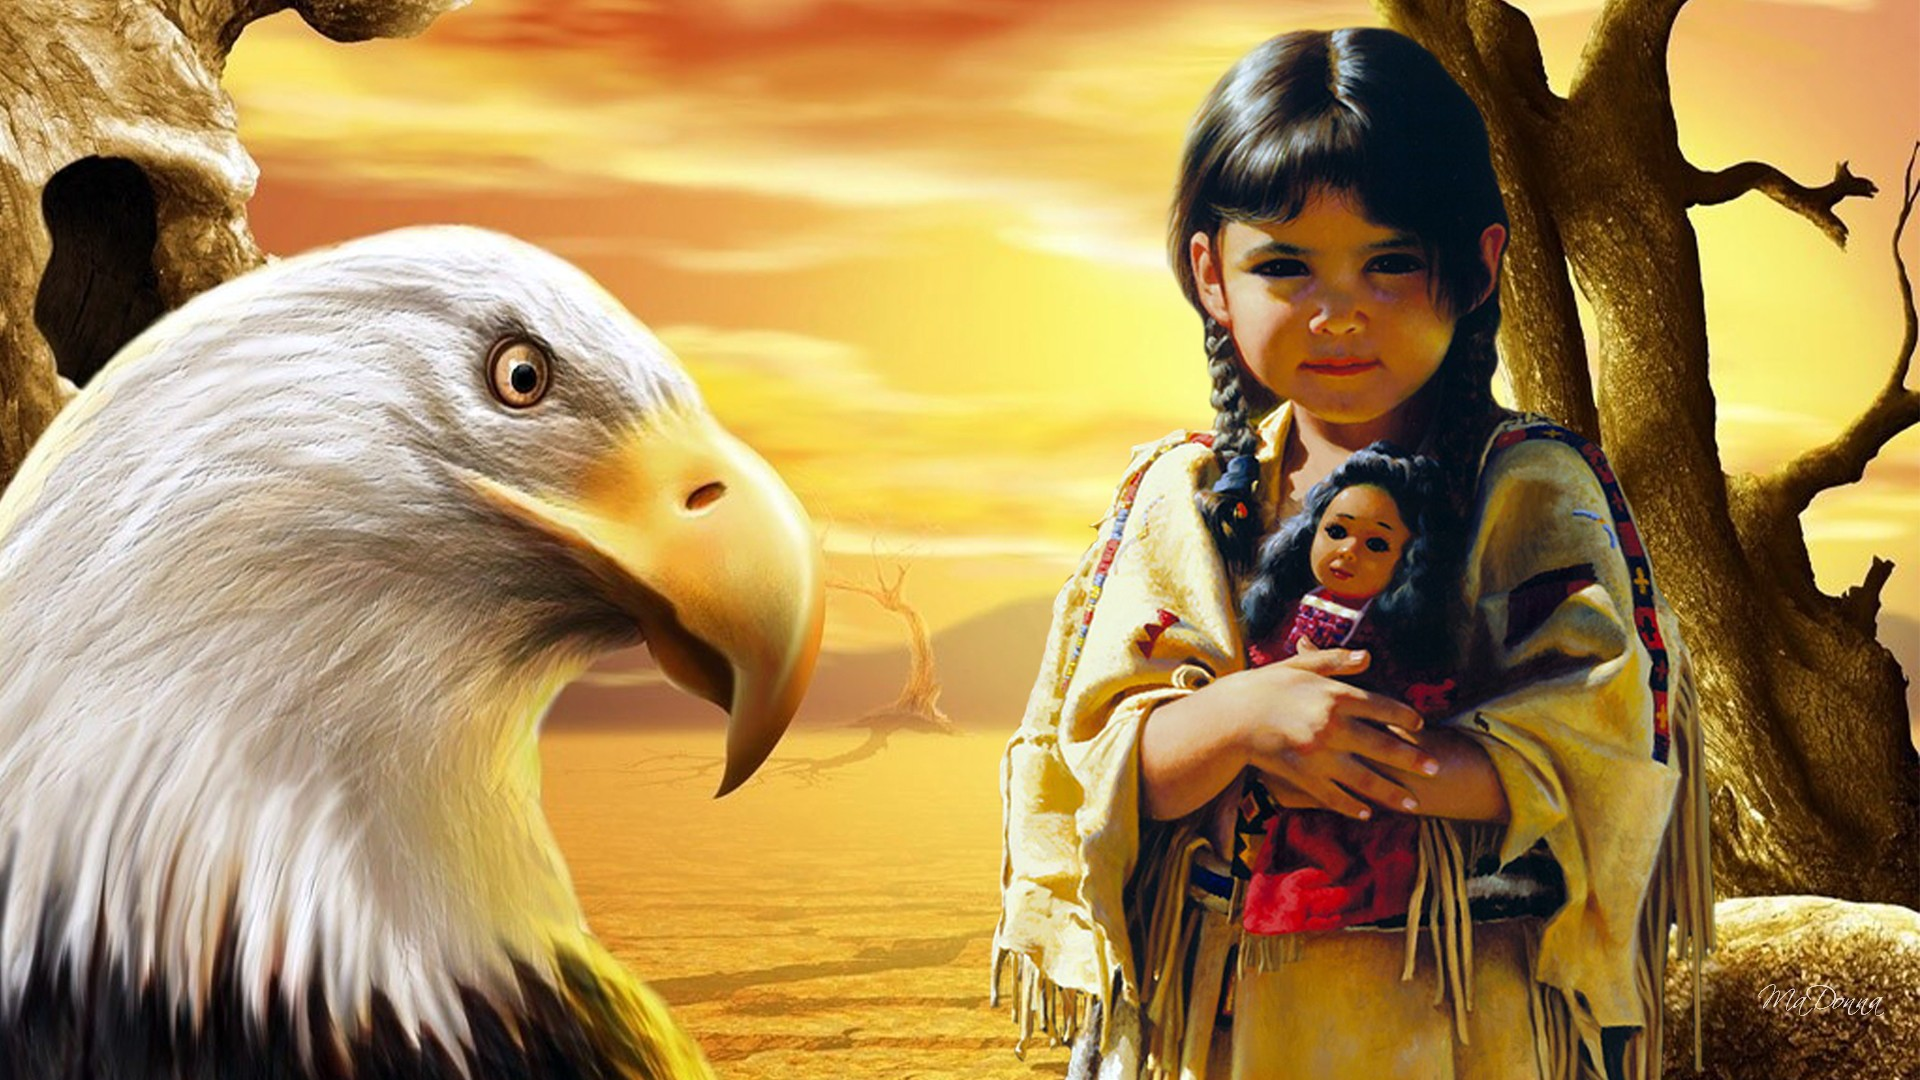 Native American Wallpaper HD wallpaper background 1920x1080